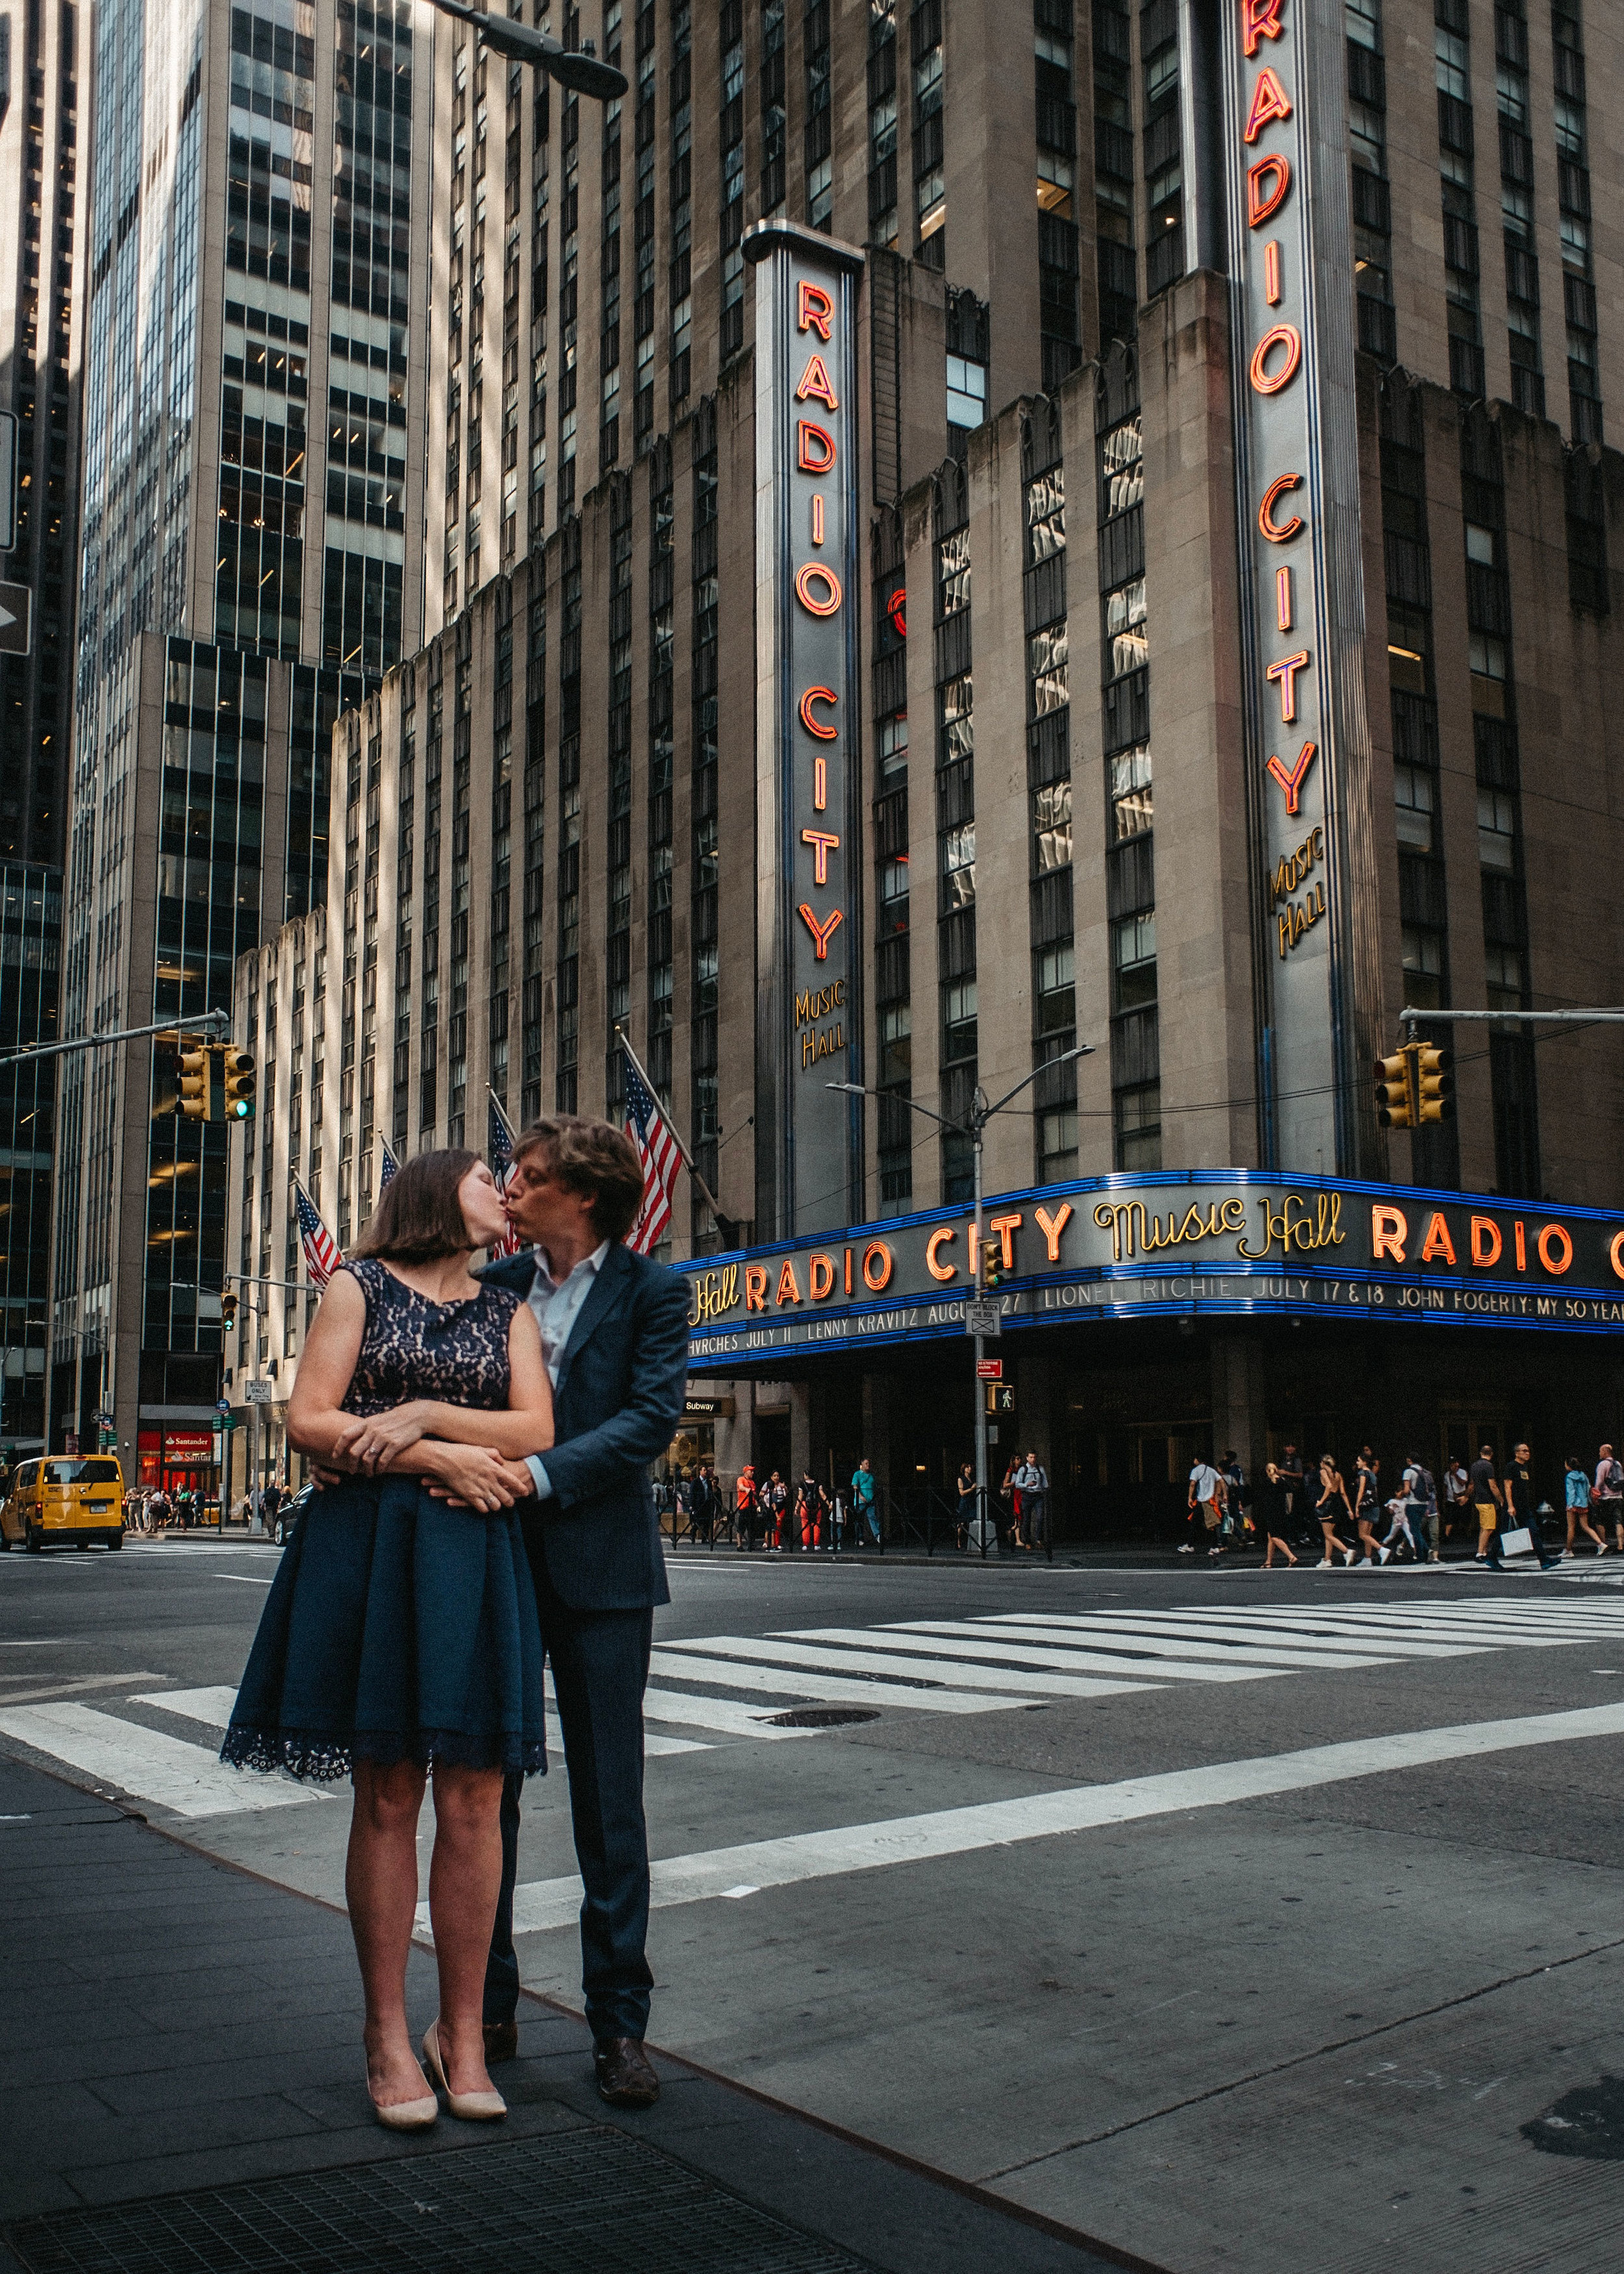 Engagement_Shoot_Radio_CIty_Music_Hall_NYC_Will_O'Hare_51F02D9C-A948-4704-AA93-65834197F0A1.jpeg